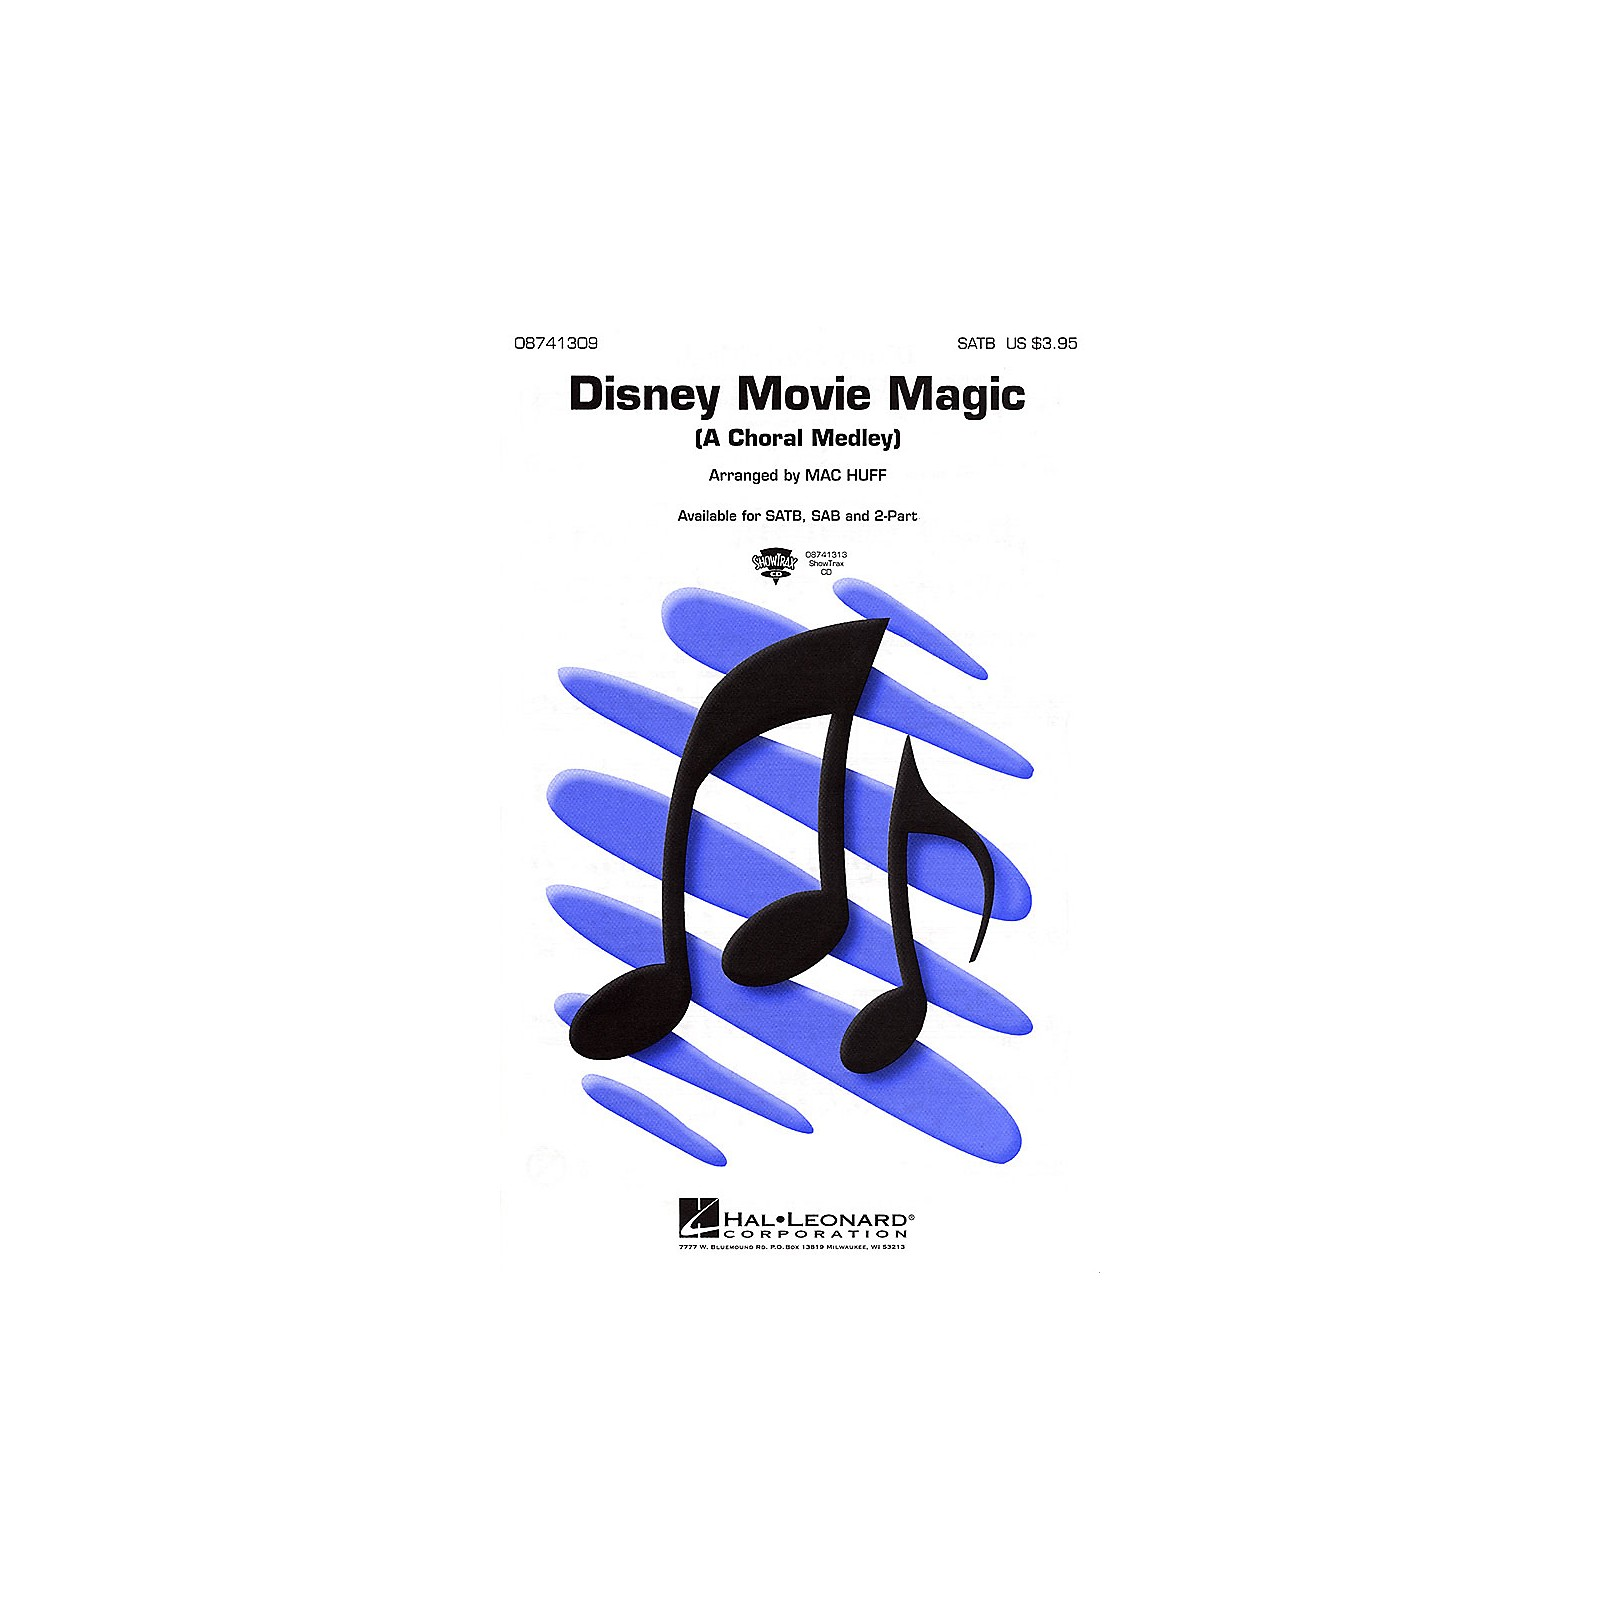 Hal Leonard Disney Movie Magic (Medley) SATB arranged by Mac Huff